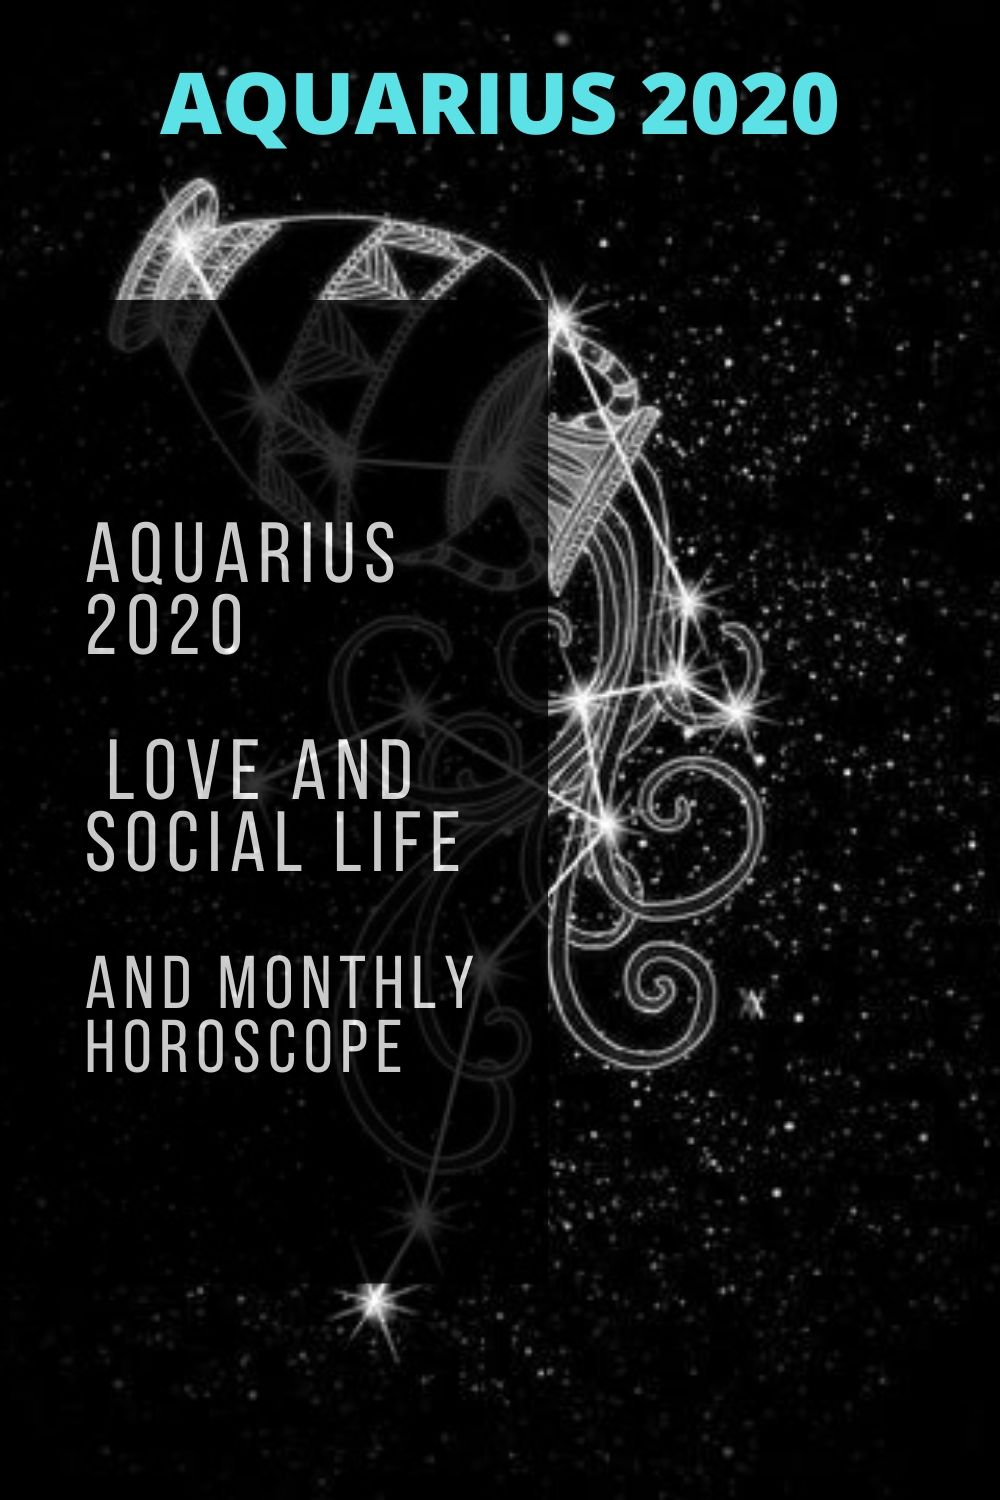 article and horoscope image